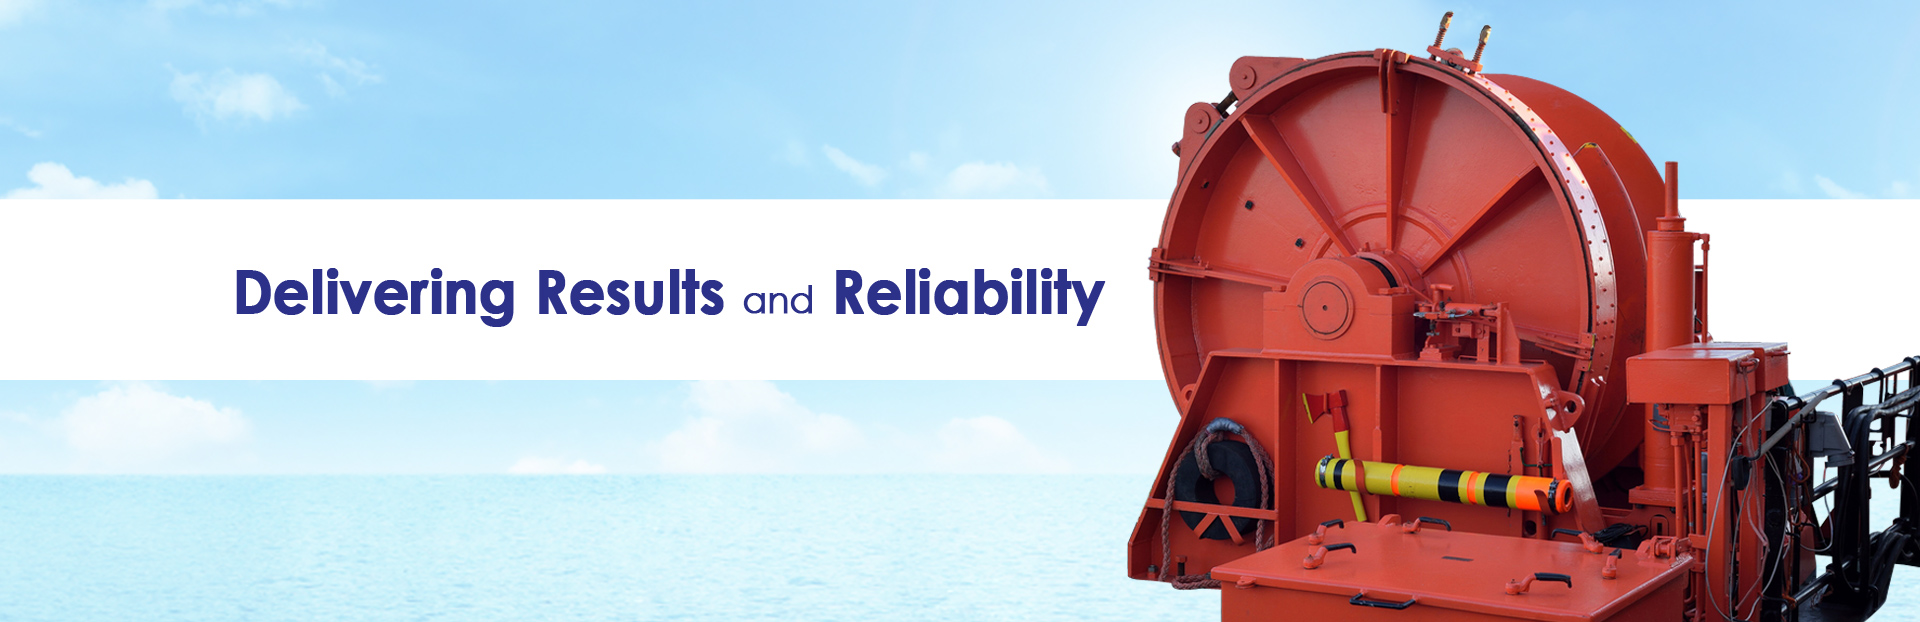 Delivering Results and Reliability